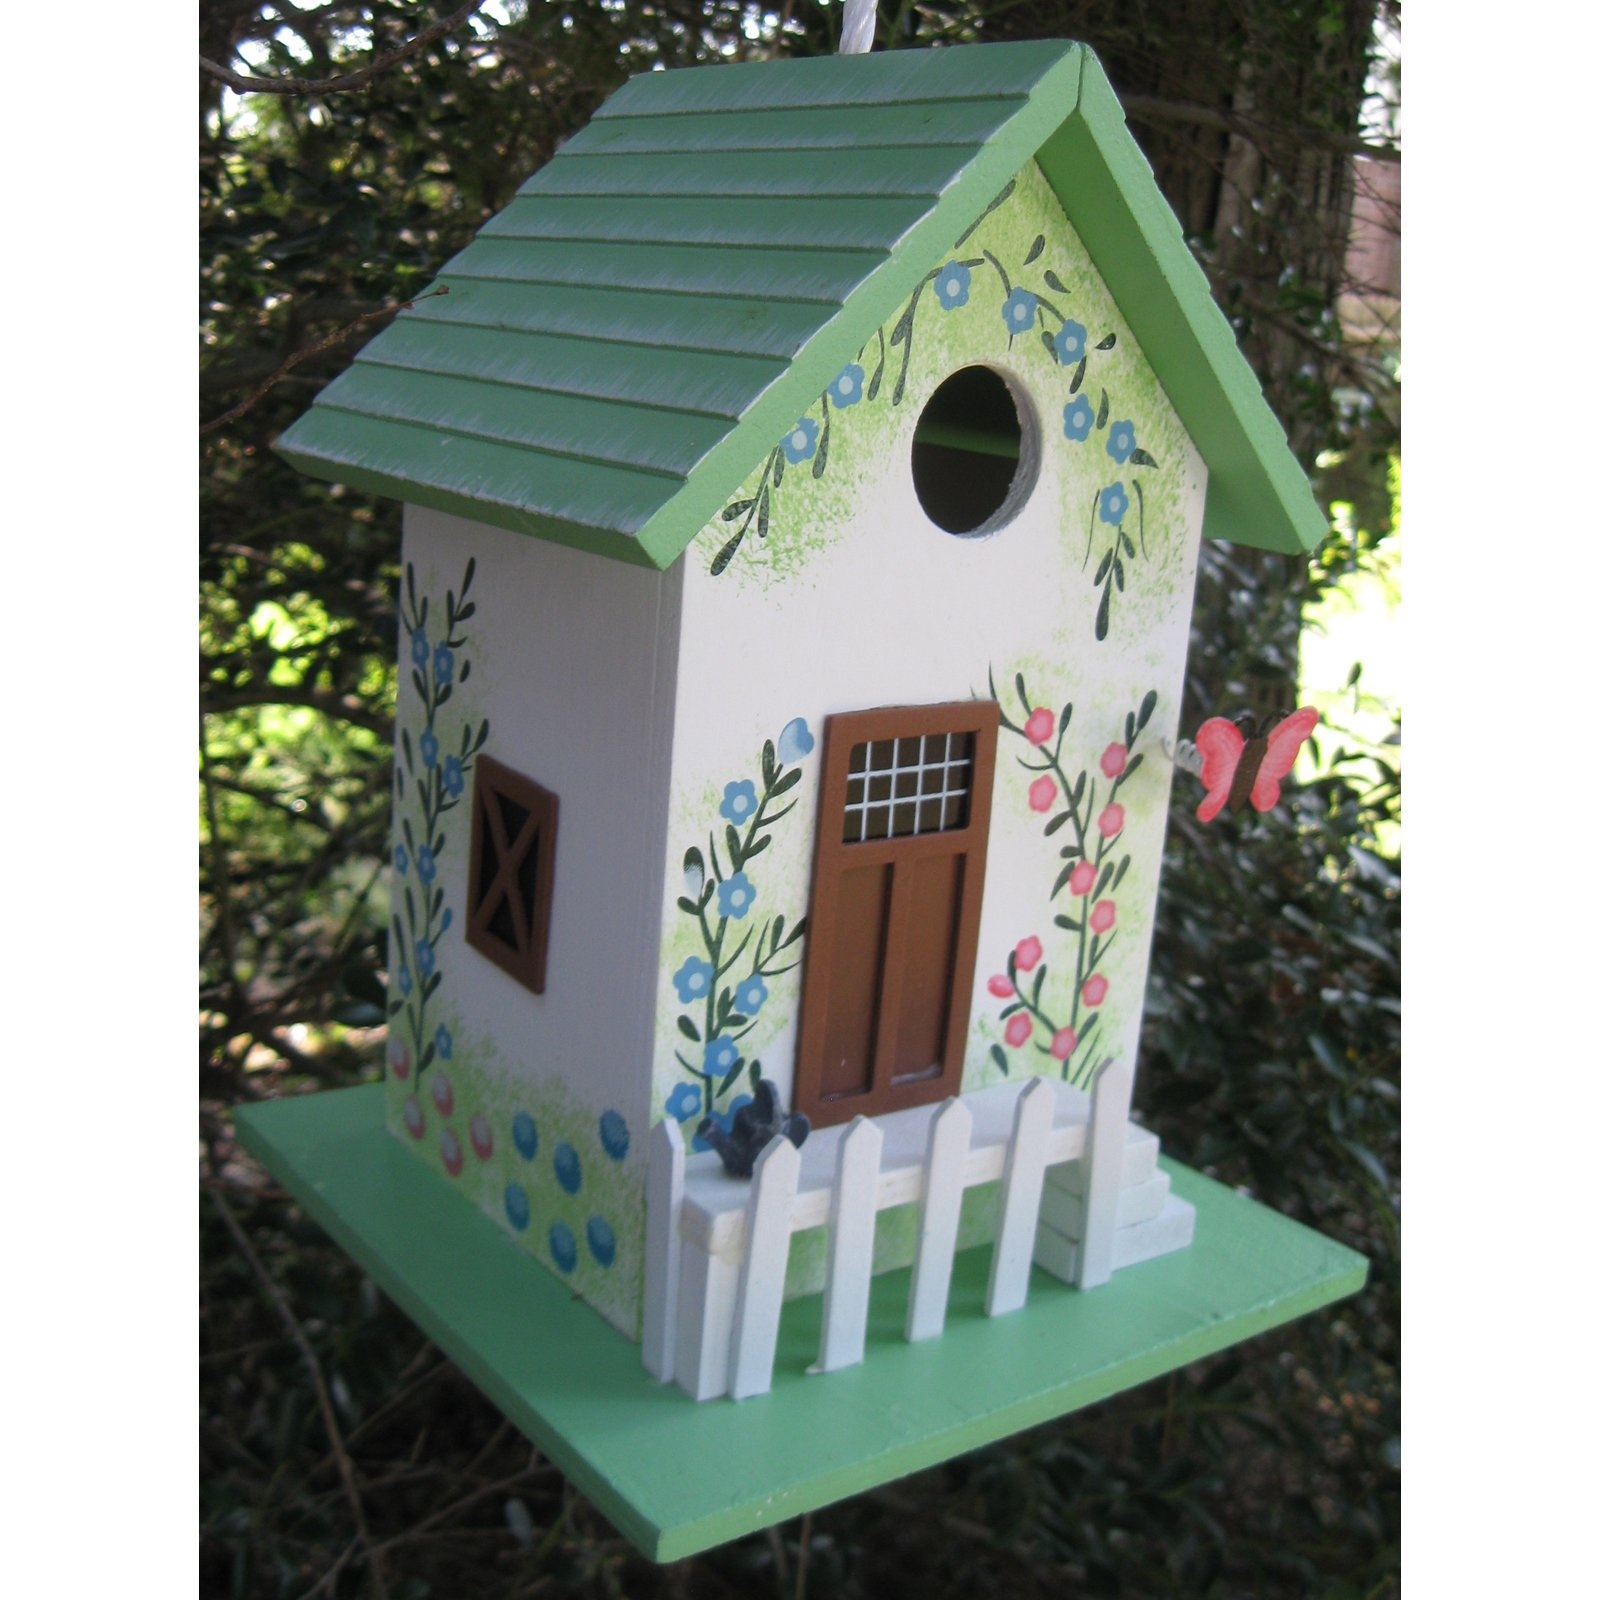 Home Bazaar Butterfly Cottage Birdhouse Green by Bird Houses